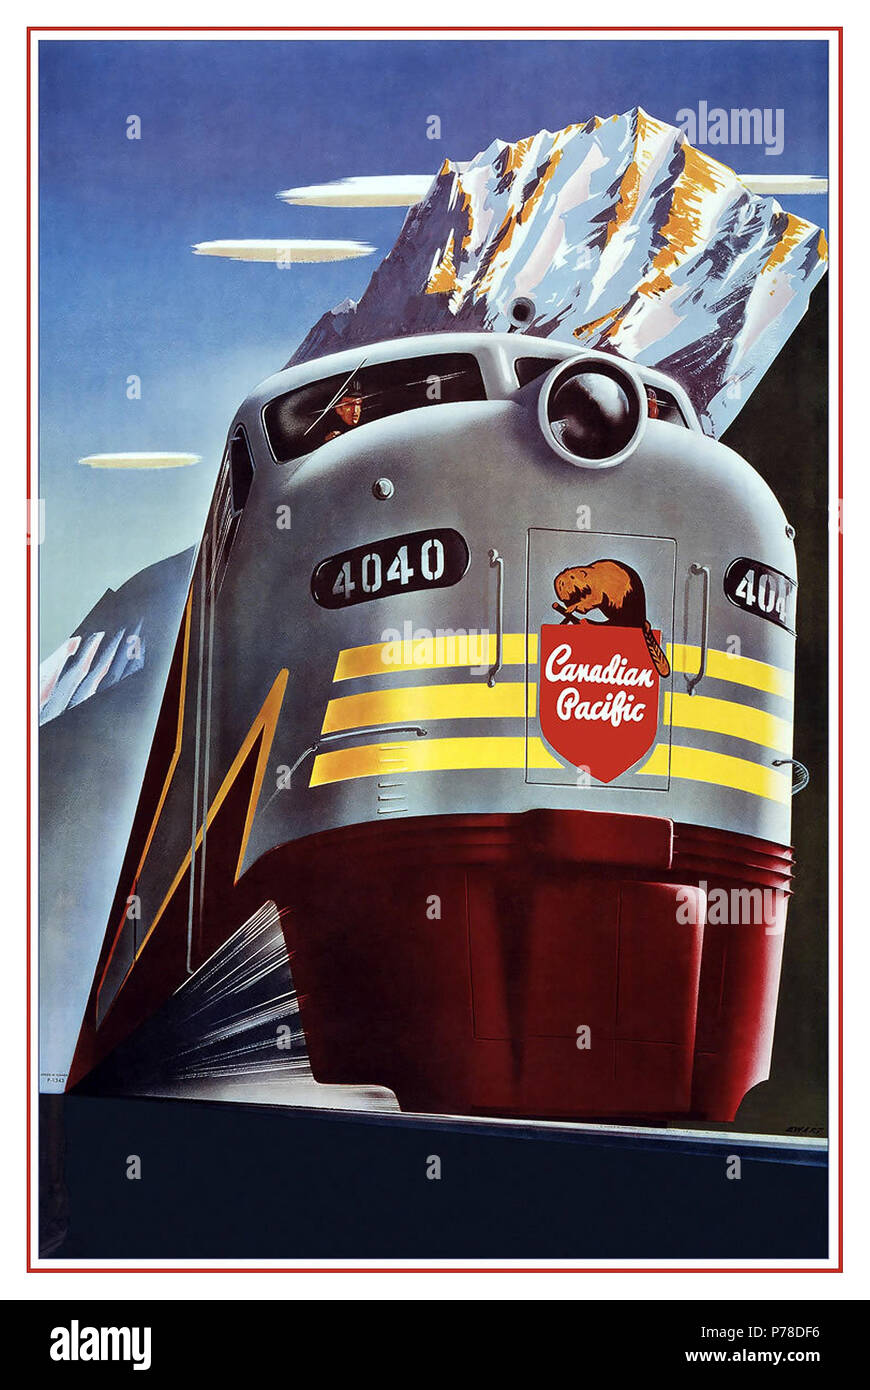 Vintage 1950's Rail Poster Graphic Art Canadian Pacific Railway Company - Diesel Locomotive Train - Logo Beaver Shield - Vintage Railroad Travel Poster by Peter Ewart c.1950 Advertisements Transportation Advertisements Railway Advertisements Canadian Pacific Railway Canadian Pacific Train - Stock Image